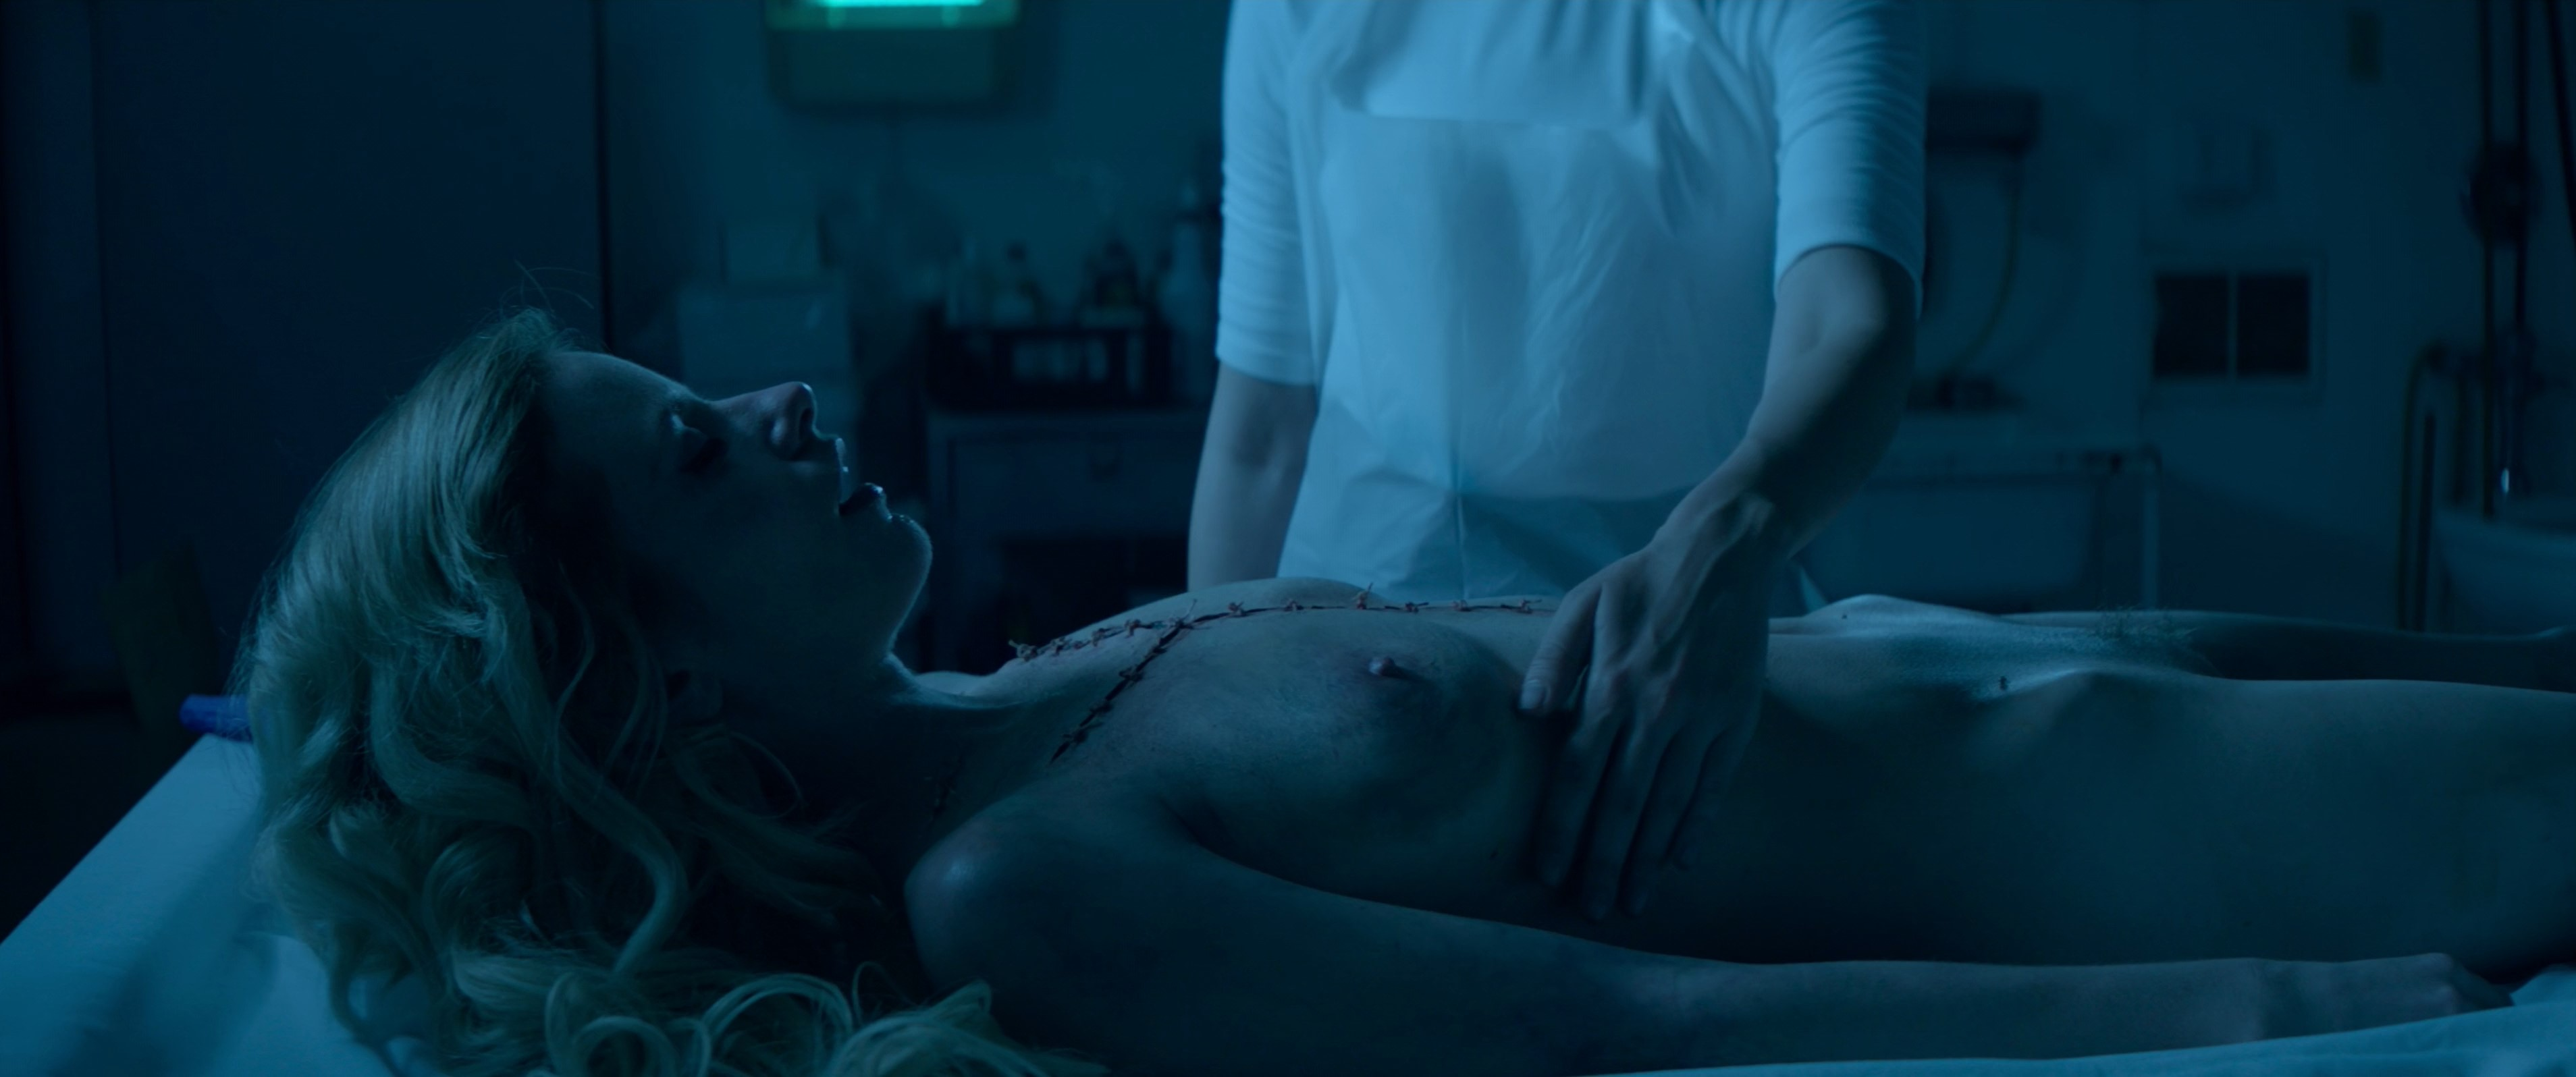 Cody Renee Cameron, Jena Malone – The Neon Demon (2016) UHD 4K